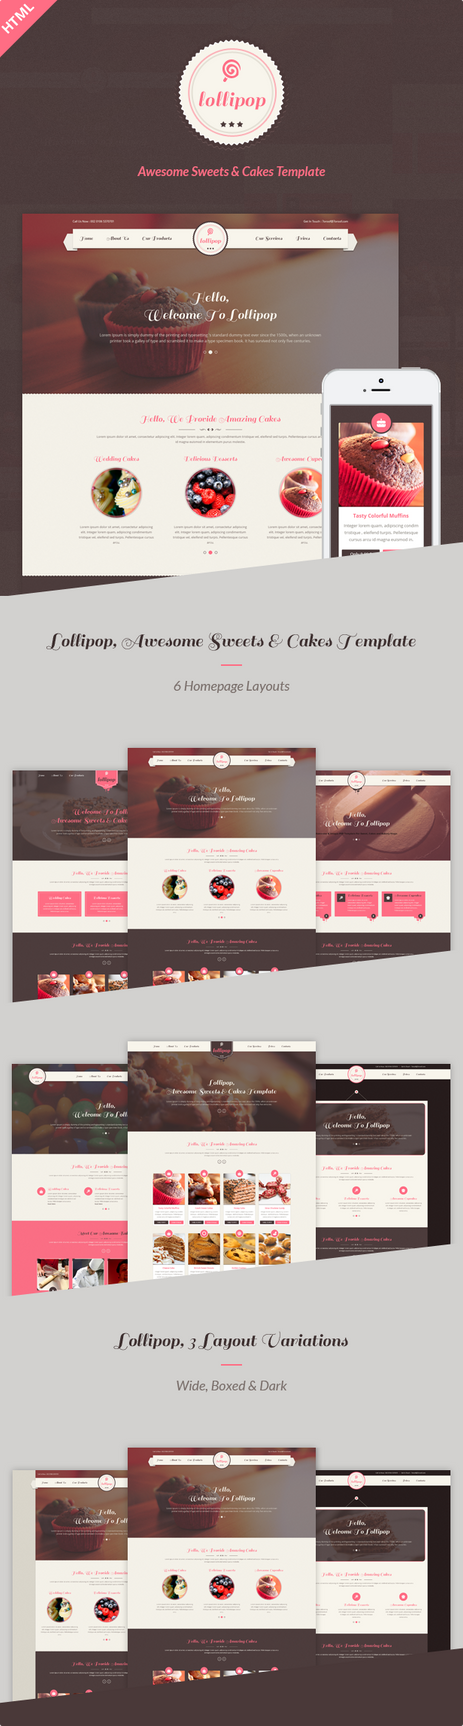 lollipop awesome sweets cakes html template by bonanzazone on deviantart. Black Bedroom Furniture Sets. Home Design Ideas